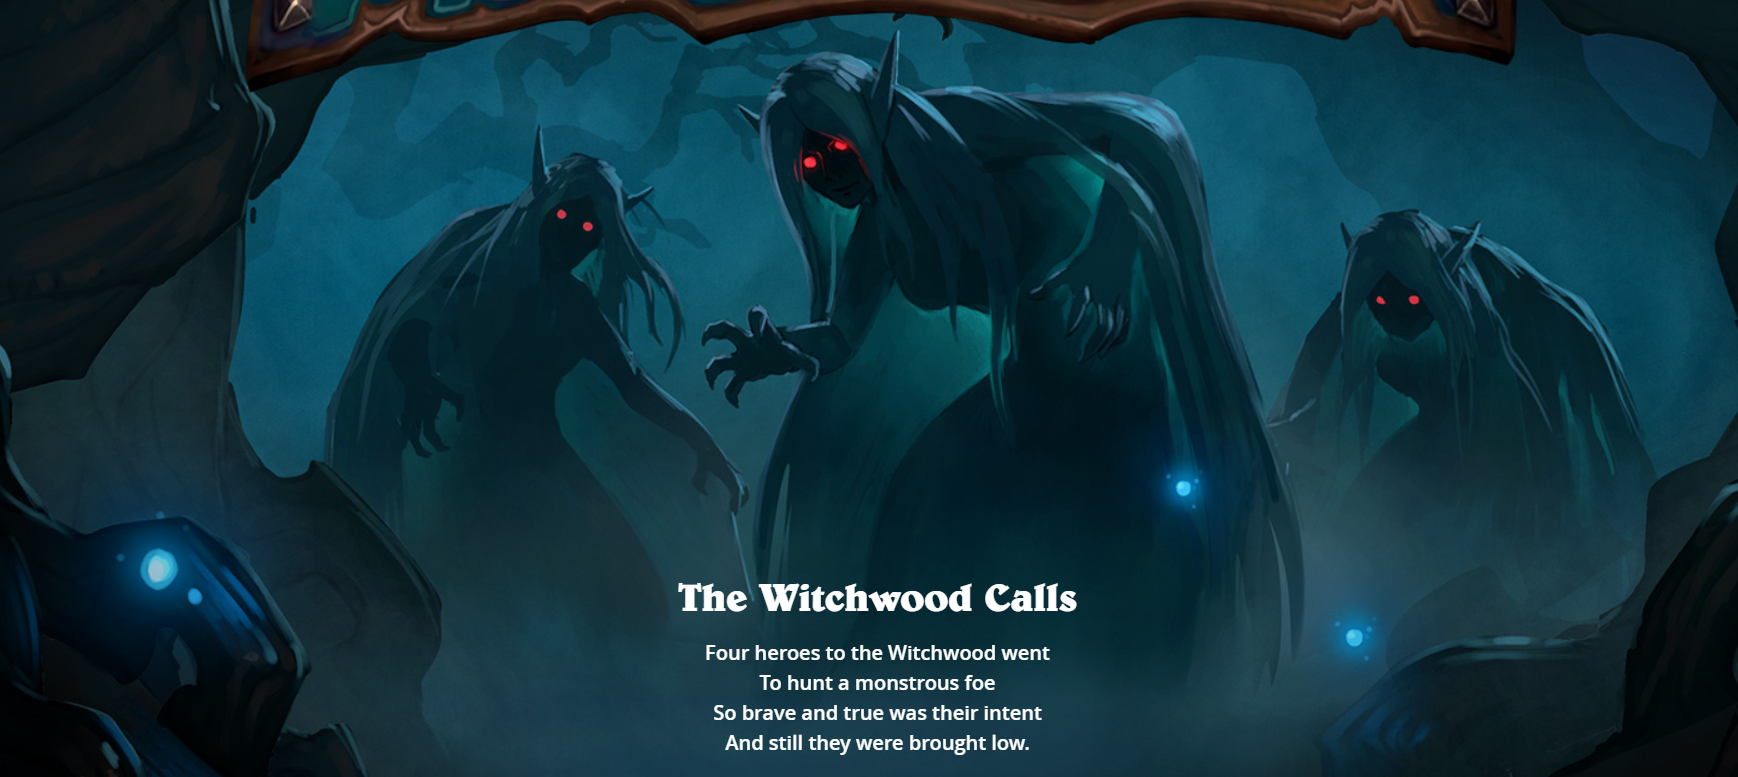 Hearthstone: New expansion 'The Witchwood' to release mid-April 2018